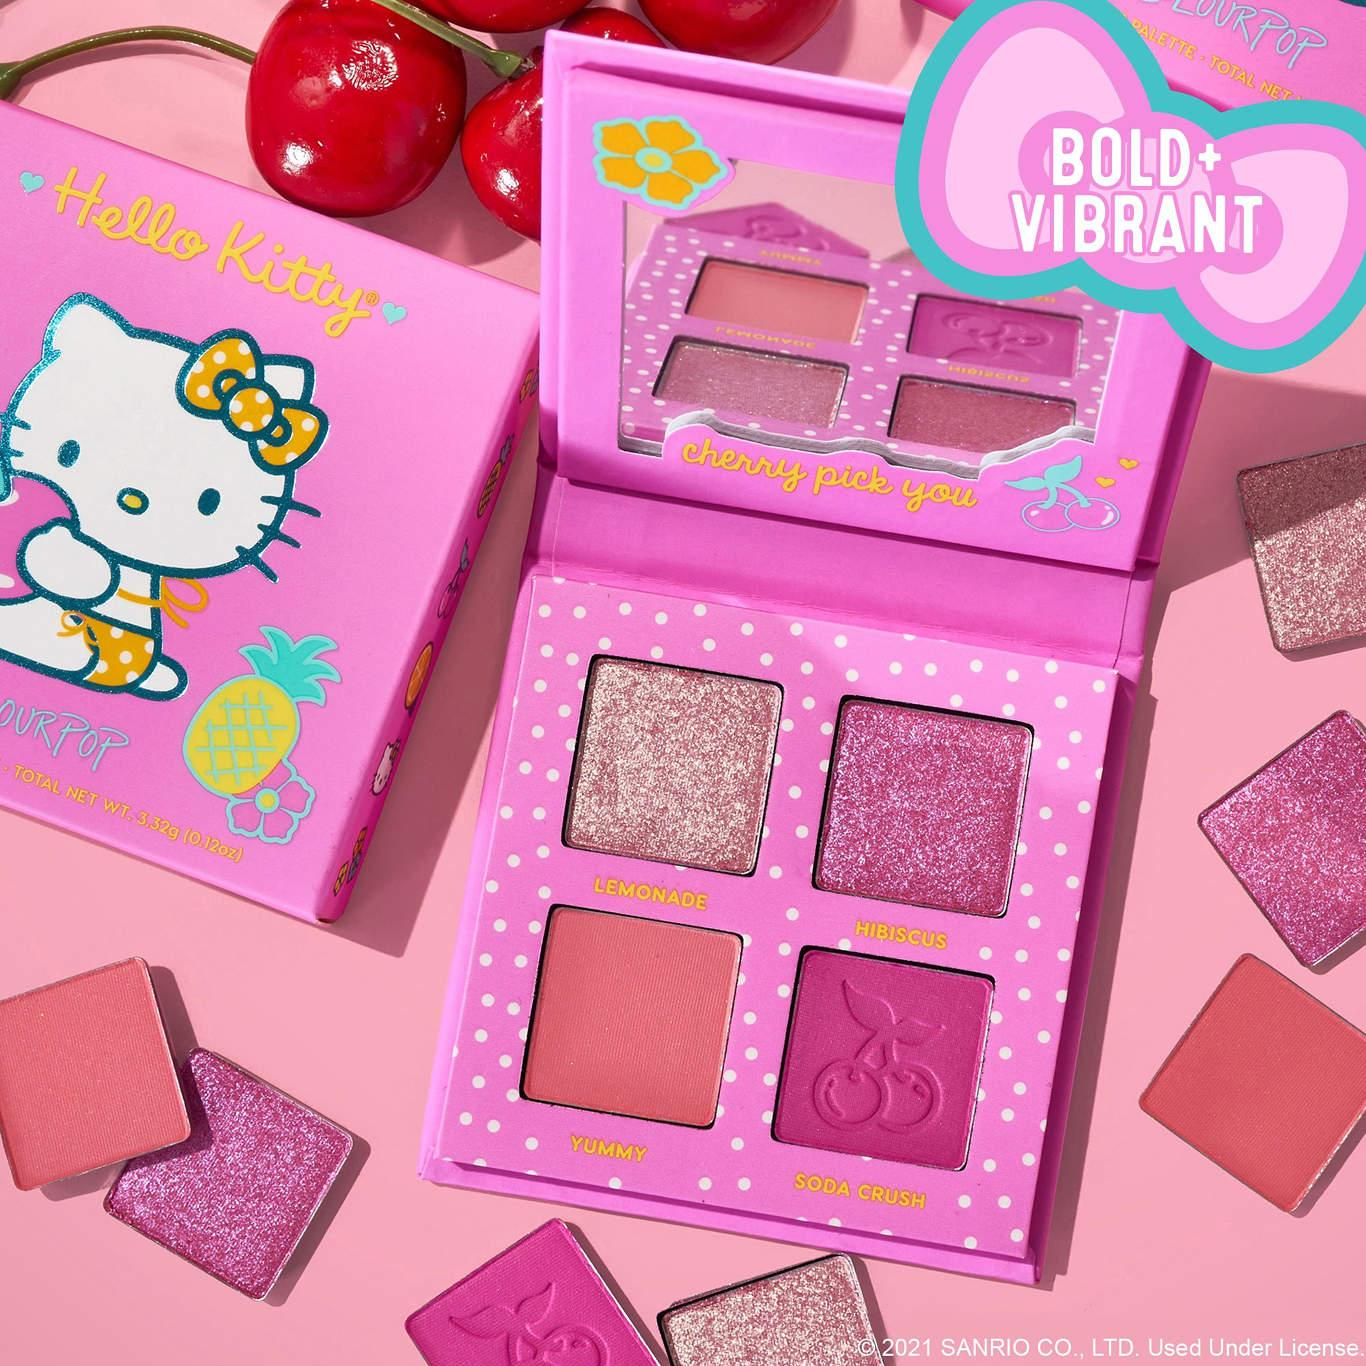 ColourPop x Hello Kitty Tropical Escape Collection Eyeshadow Palette In Cherry Sweet